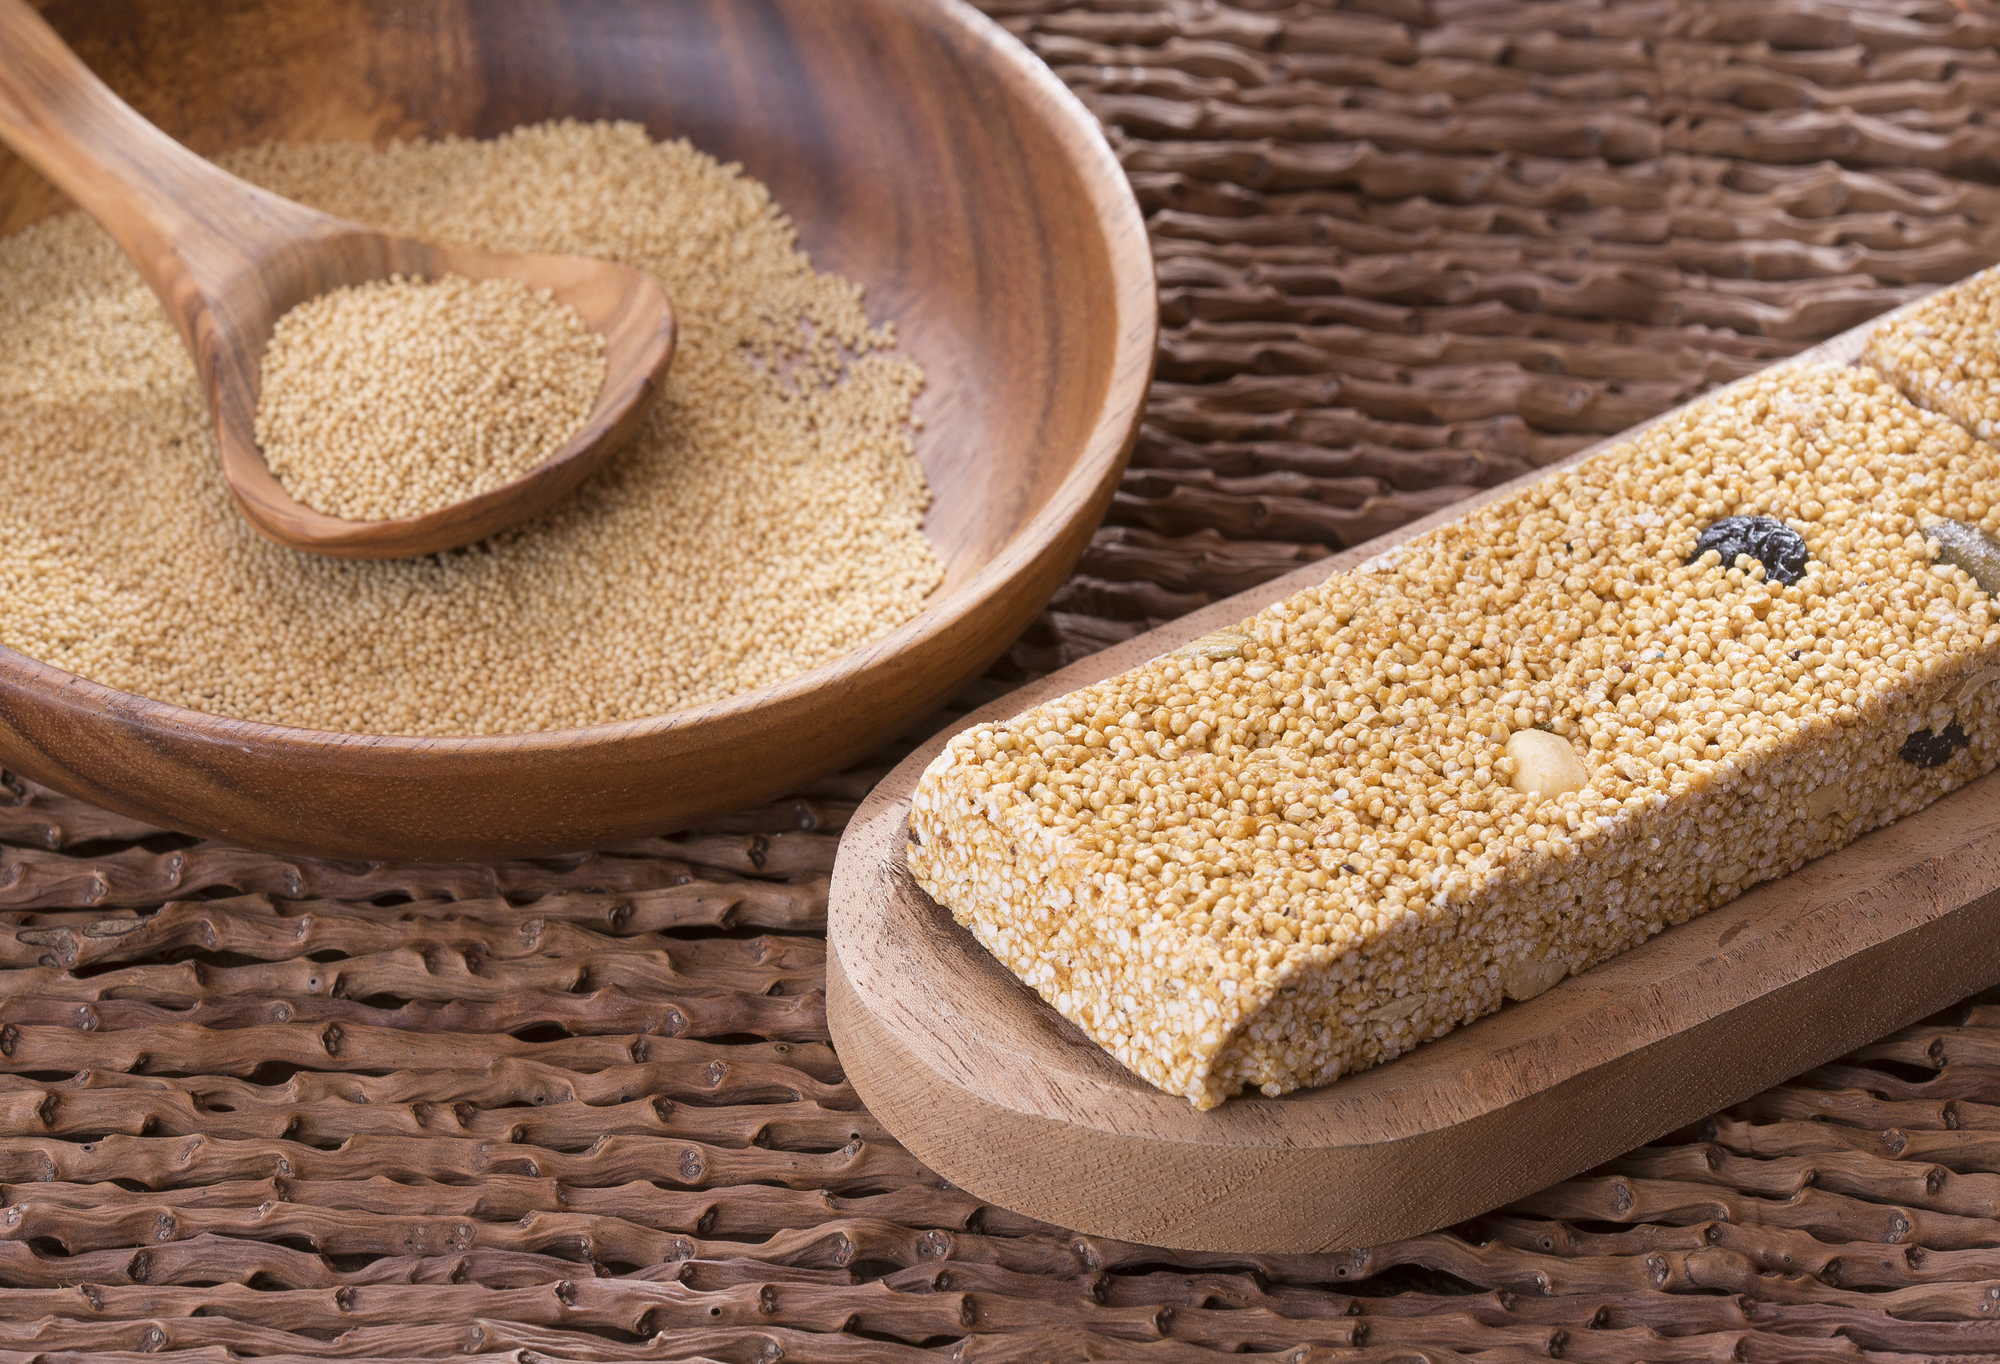 Alegria bars are a mexican dessert made with popped amaranth (paleo)